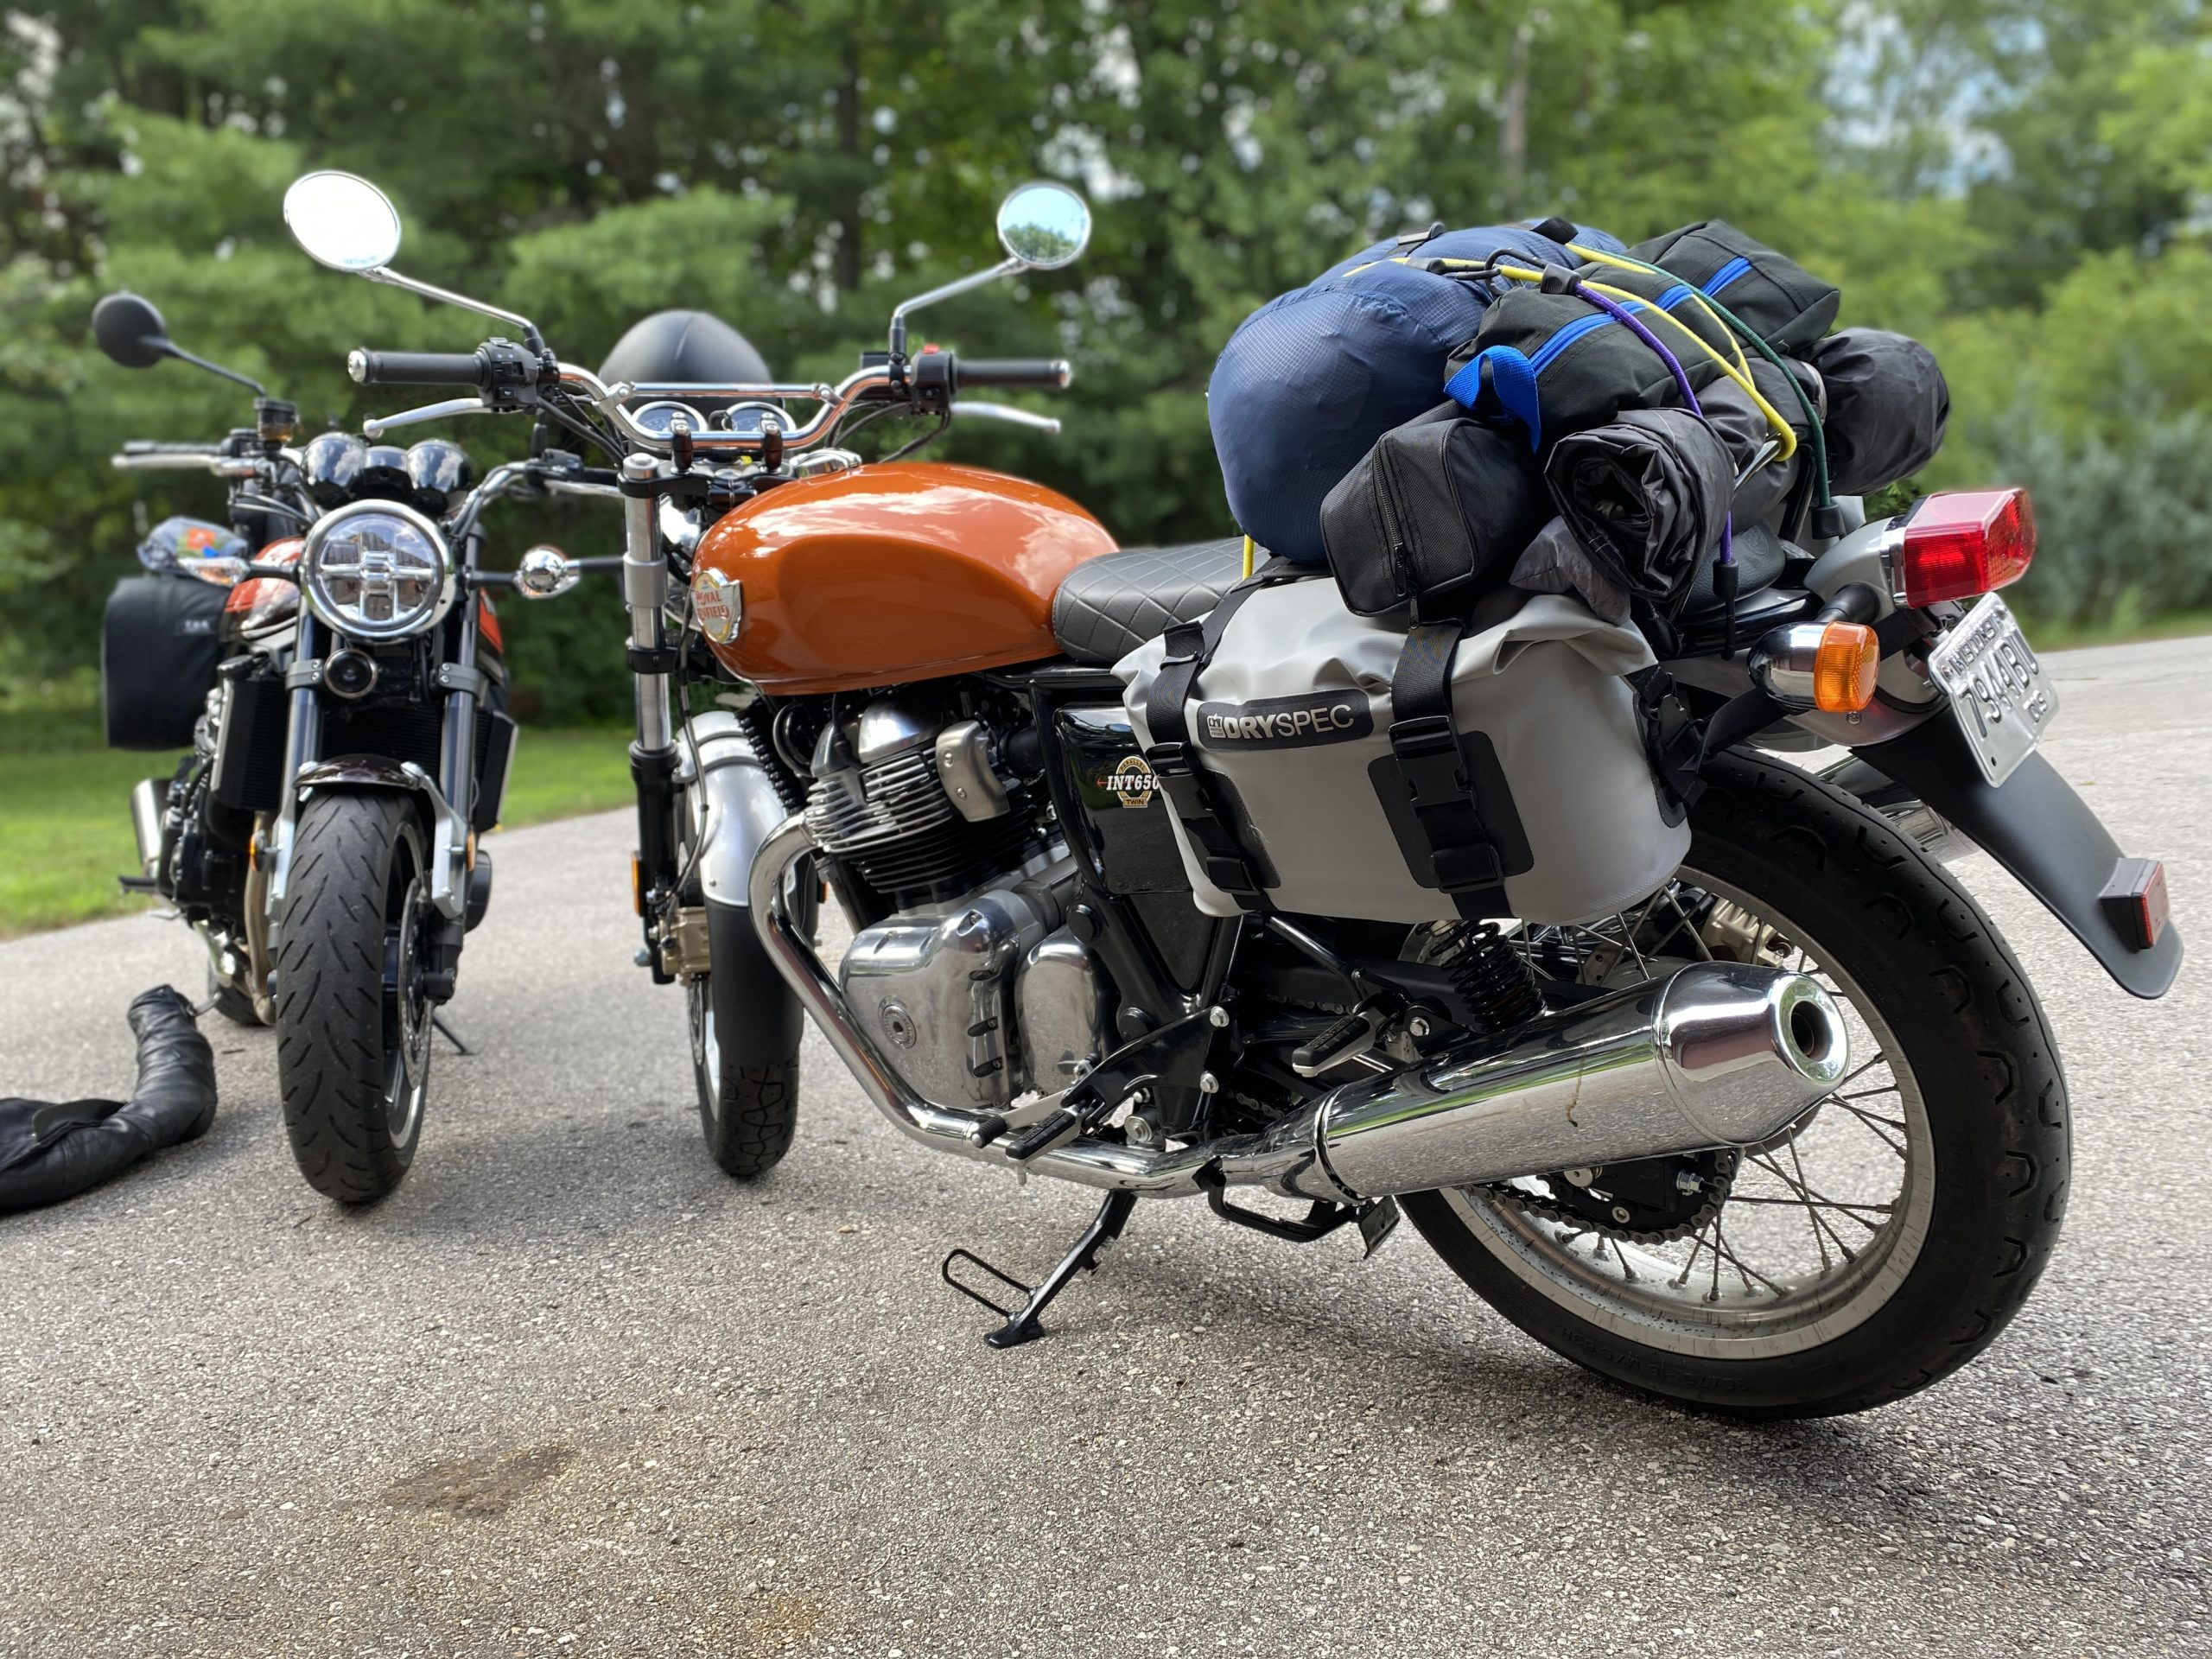 Royal Enfield INT650 with luggage